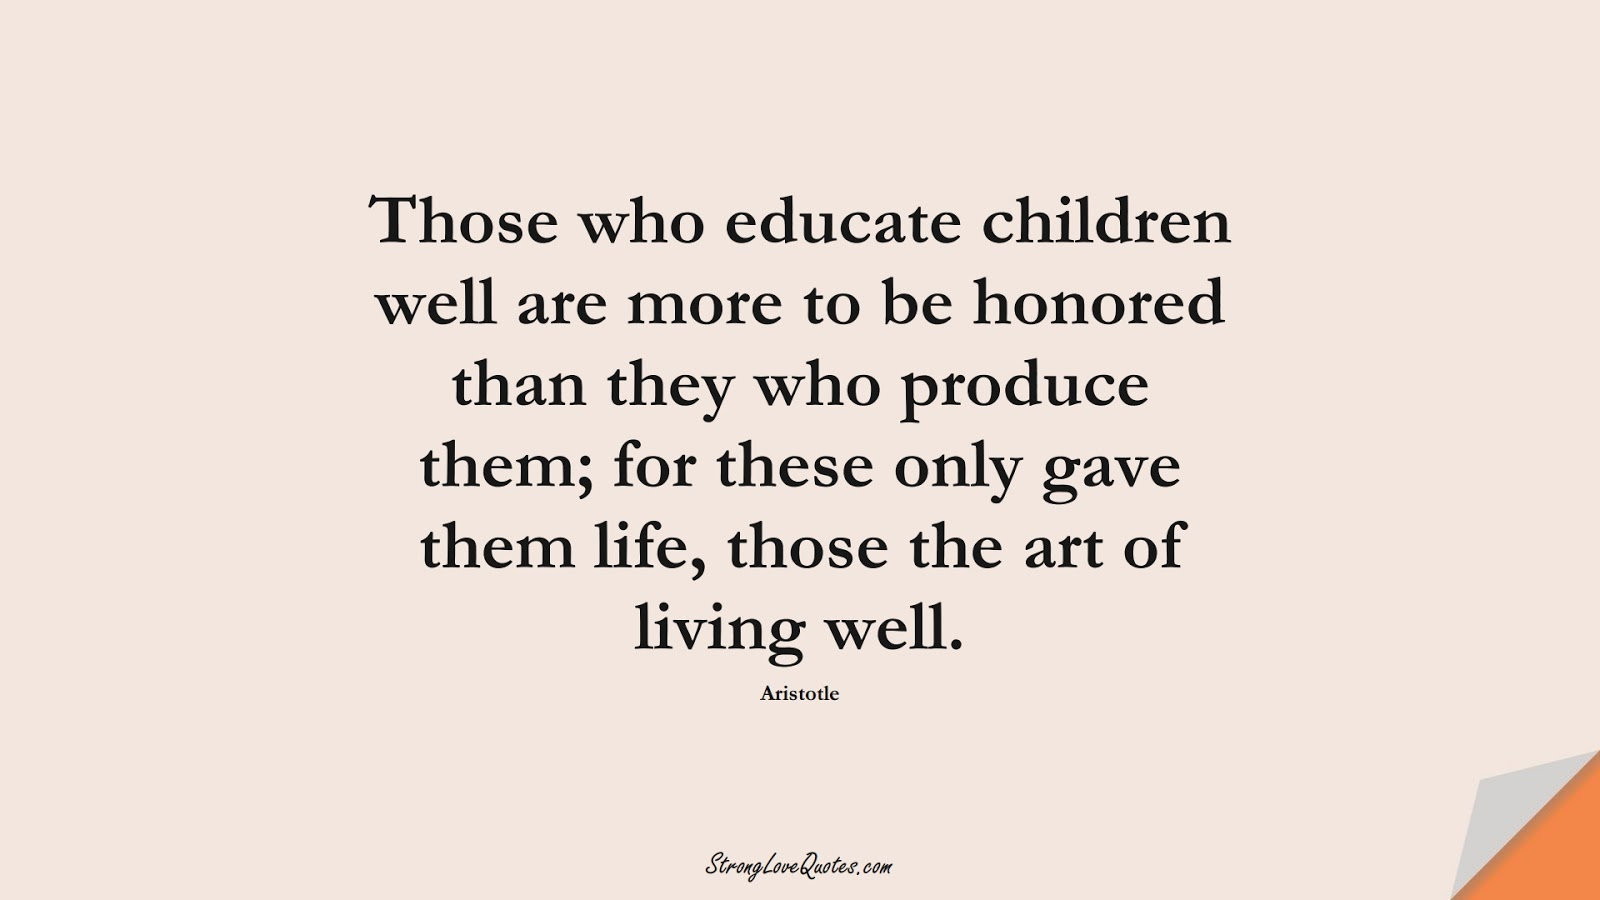 Those who educate children well are more to be honored than they who produce them; for these only gave them life, those the art of living well. (Aristotle);  #EducationQuotes